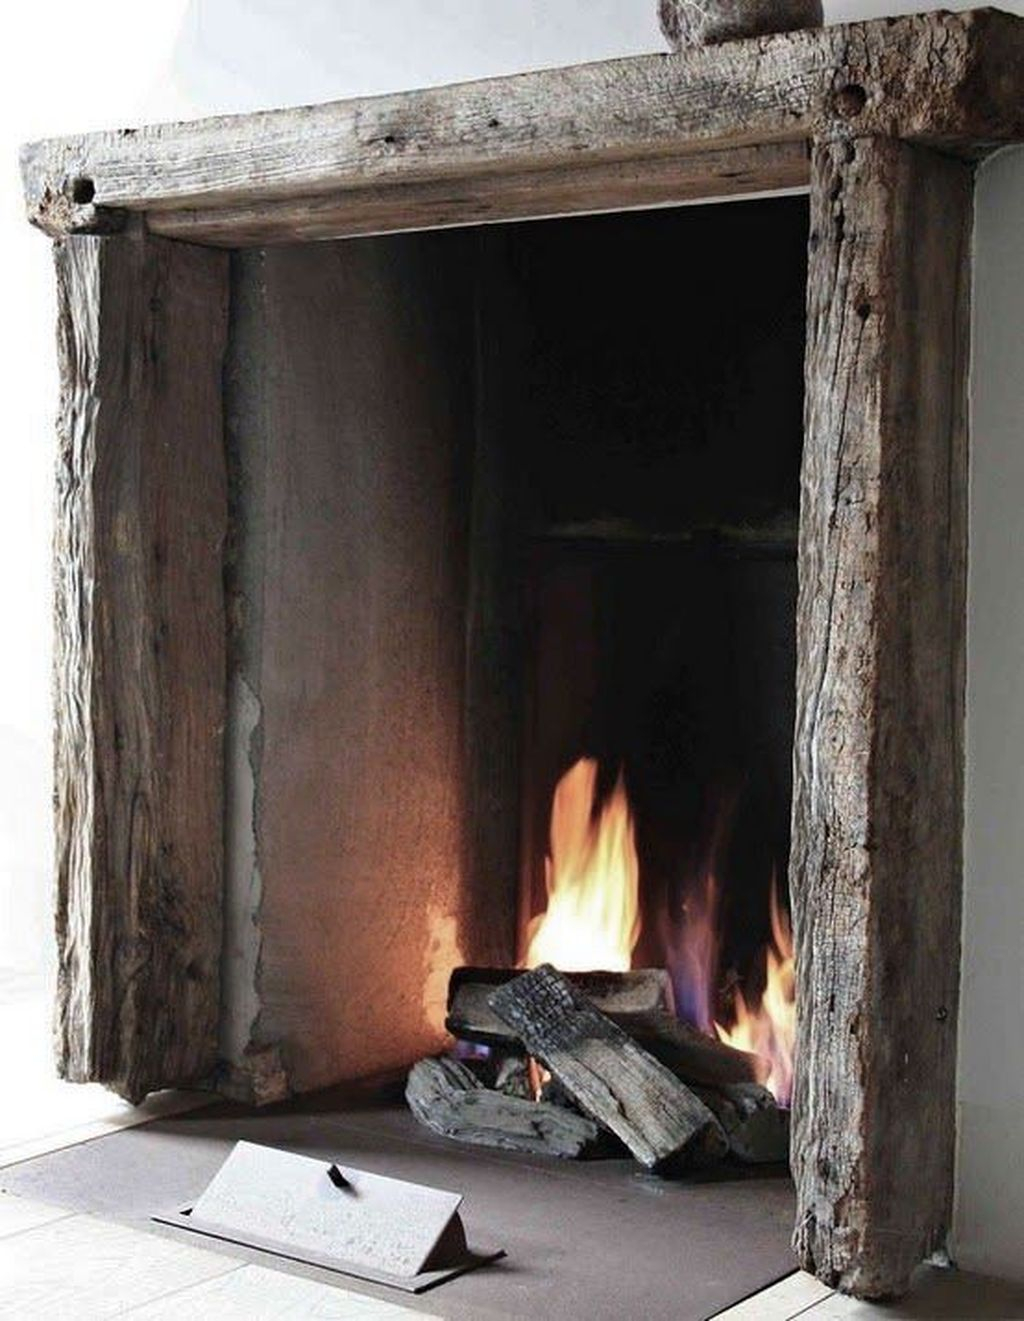 Inspiring Rustic Christmas Fireplace Ideas To Makes Your Home Warmer 75